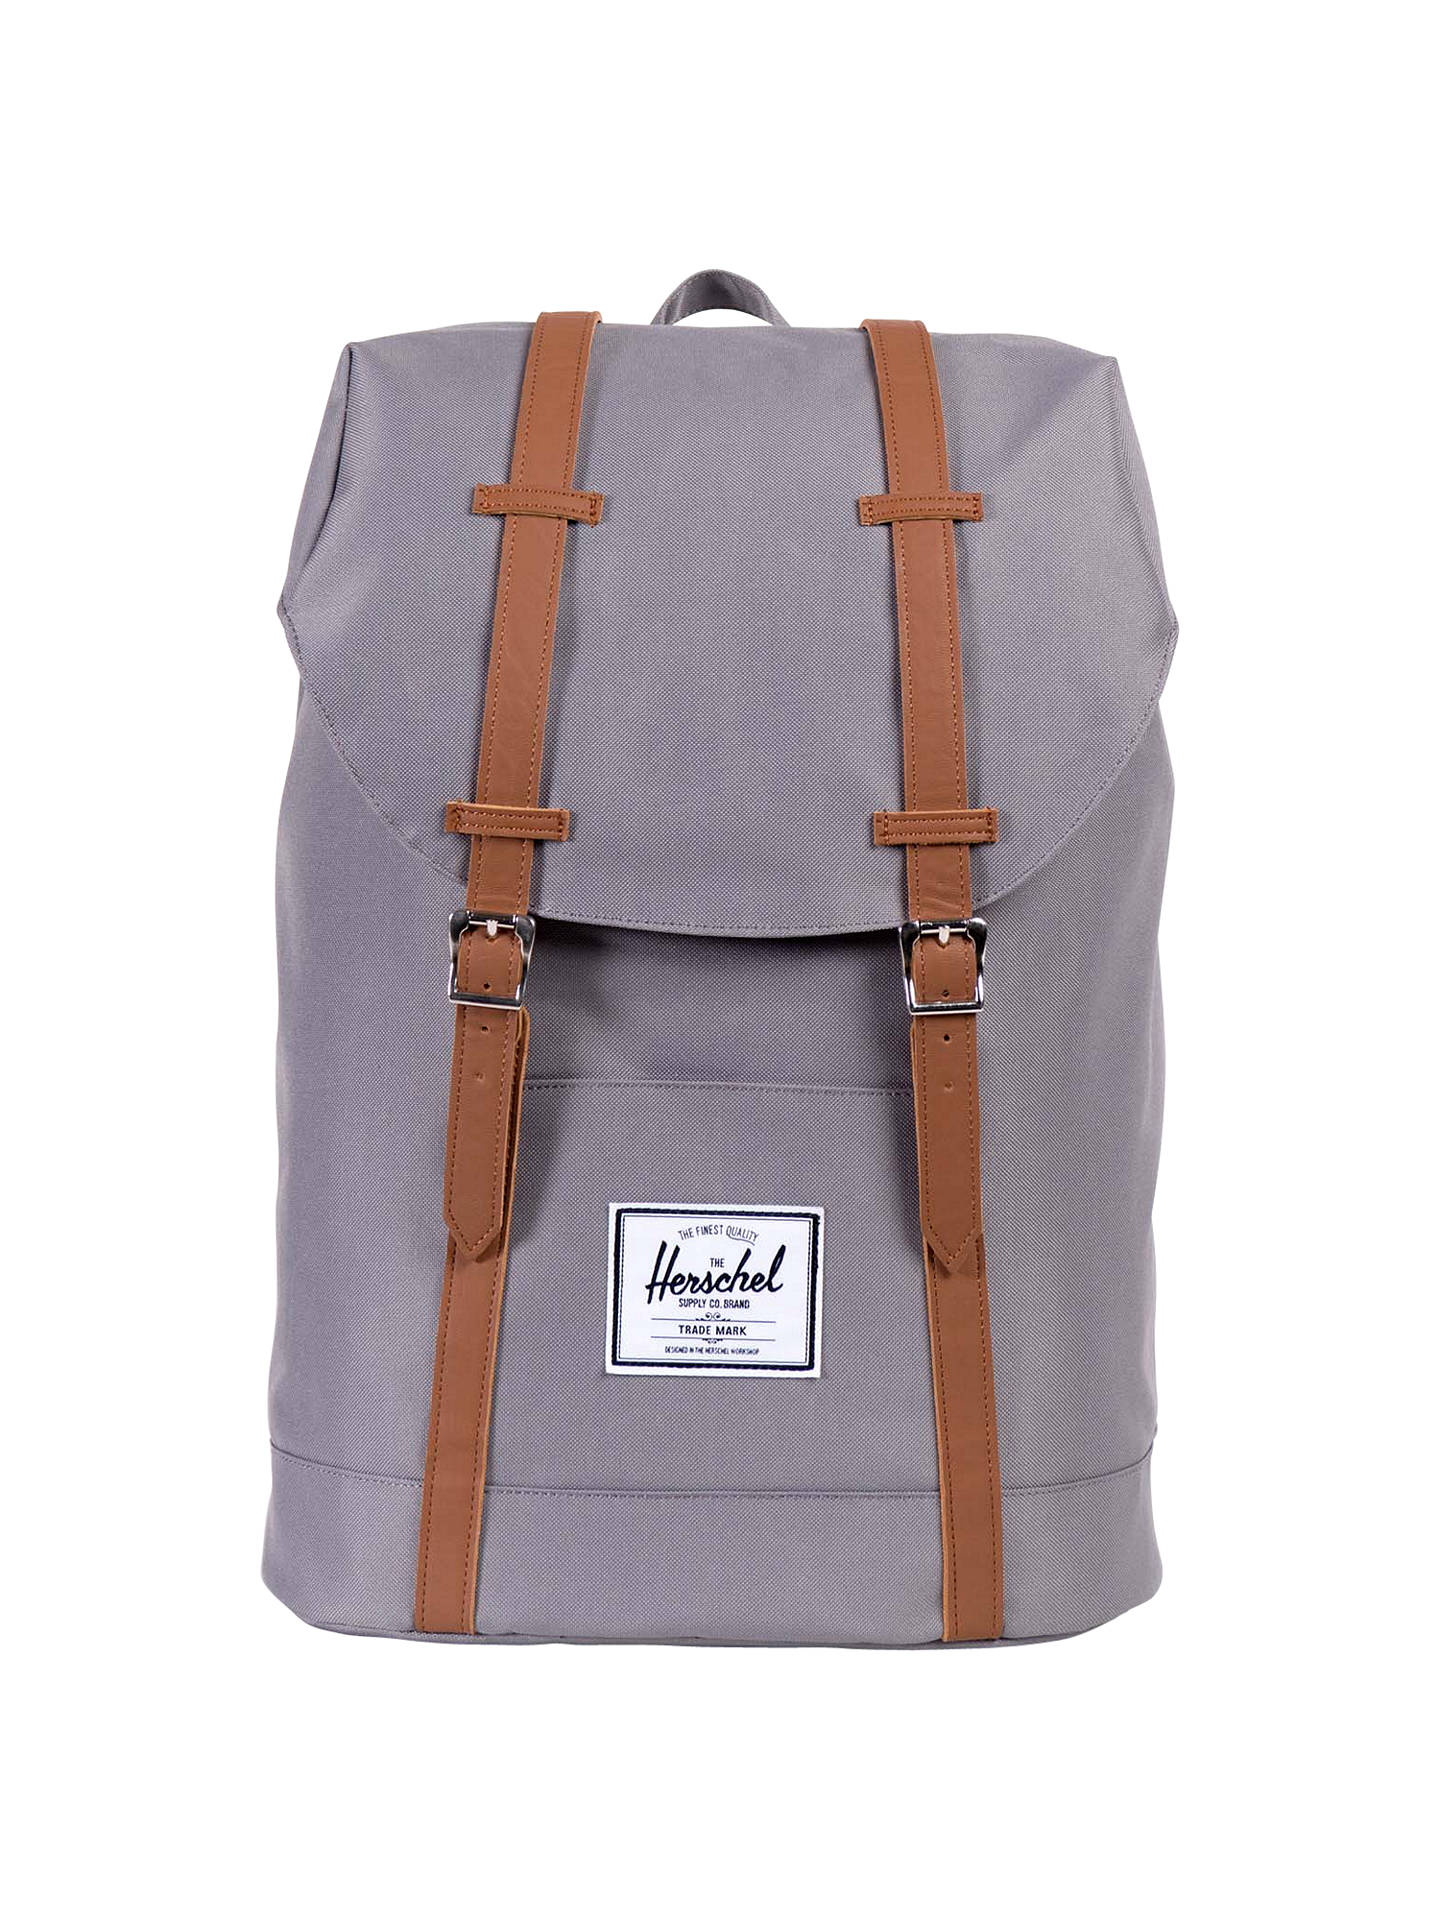 63bbbd3898f0 Buy Herschel Supply Co. Retreat Backpack, Grey/Tan Online at johnlewis.com  ...